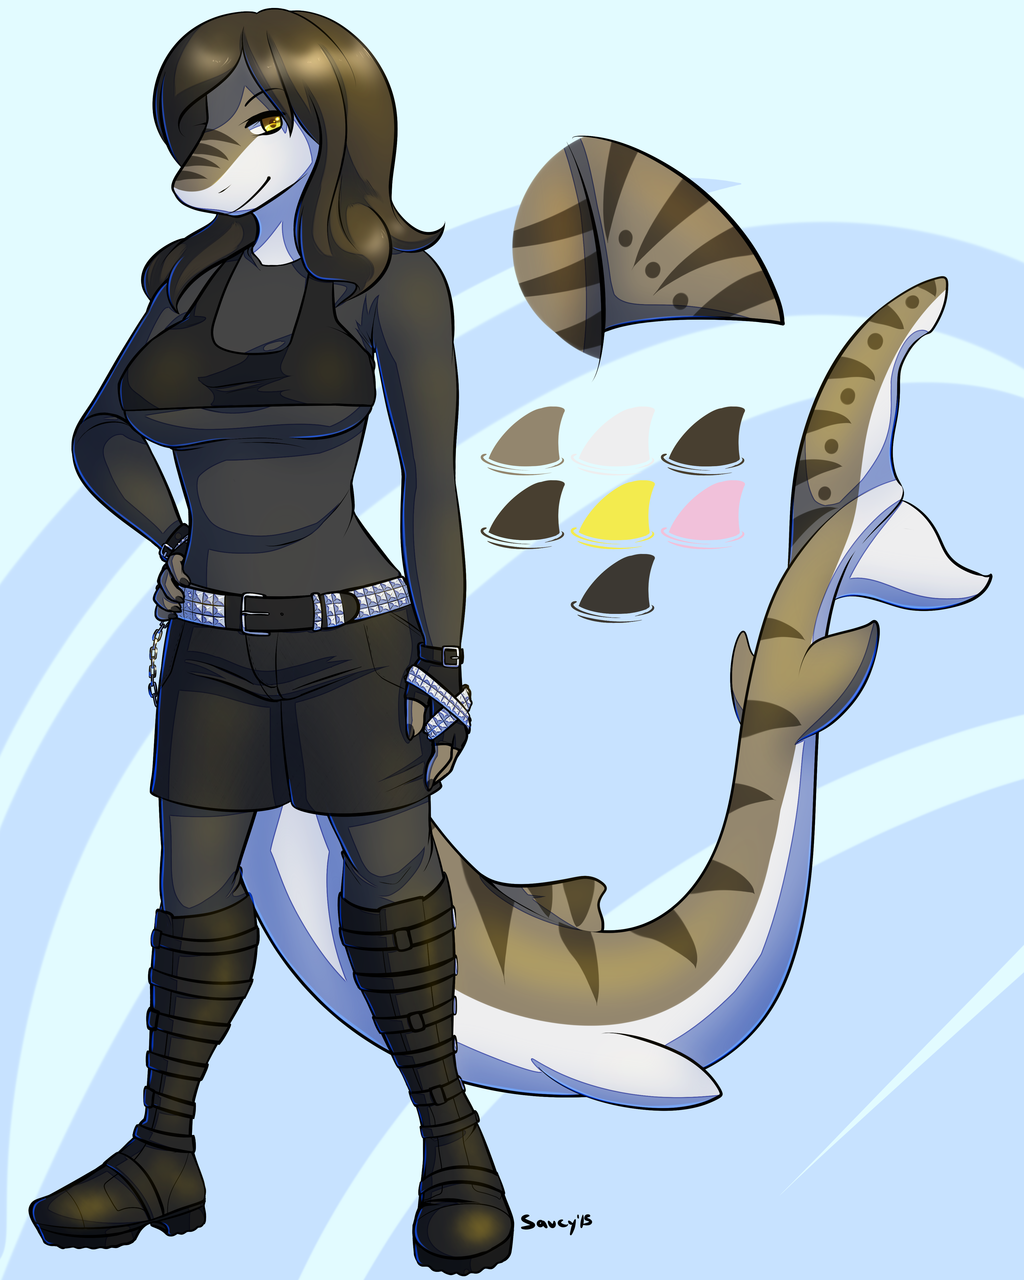 Most recent image: C: Kanesha Ref Sheet by Saucy